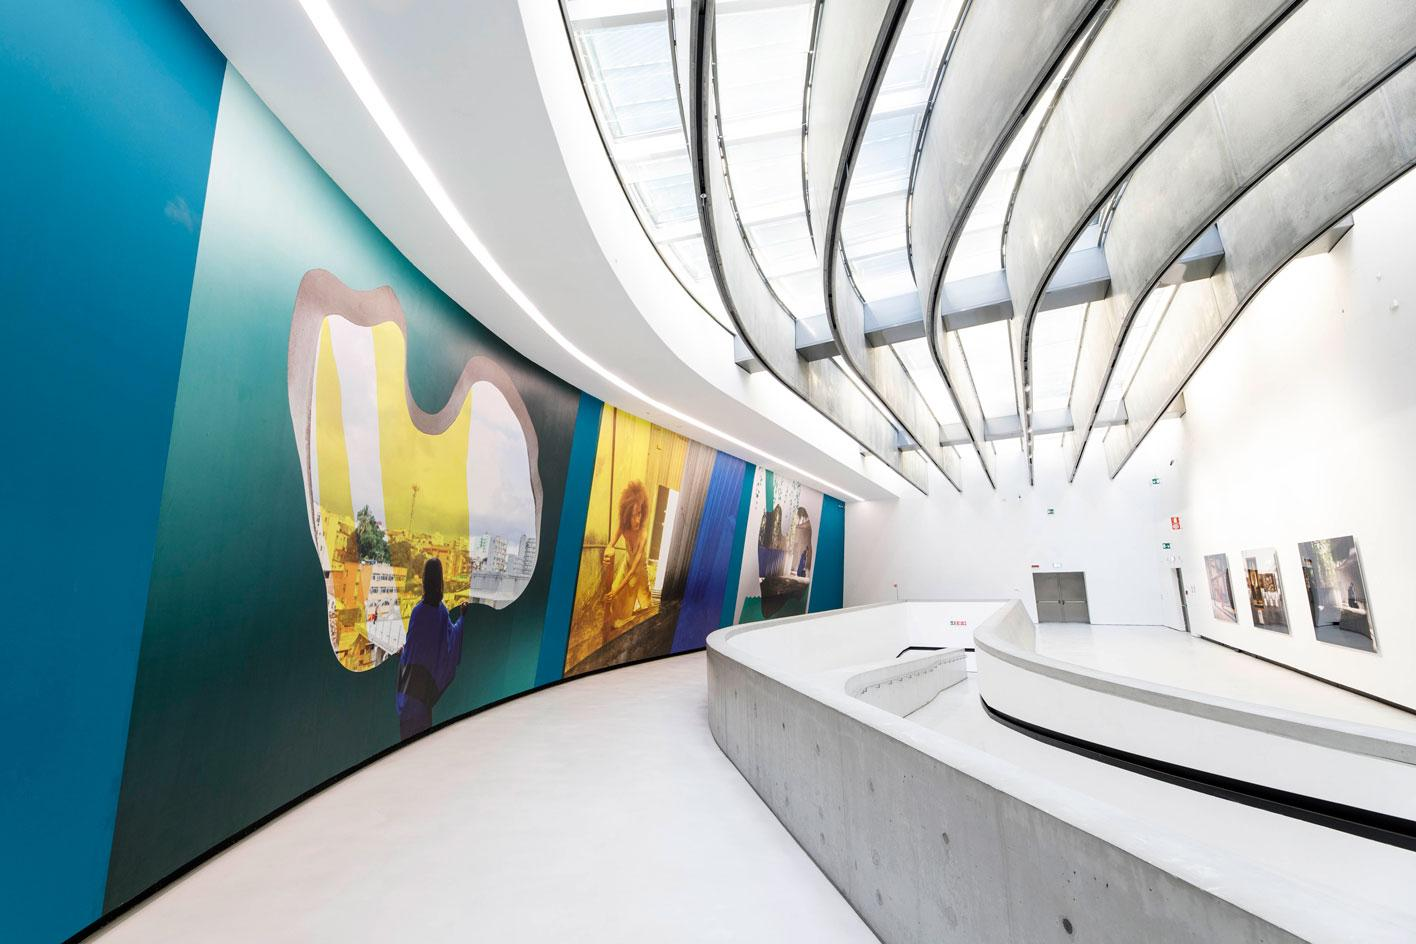 Installation views of A Marvellous Entanglement, MAXXI, Rome by Isaac Julien